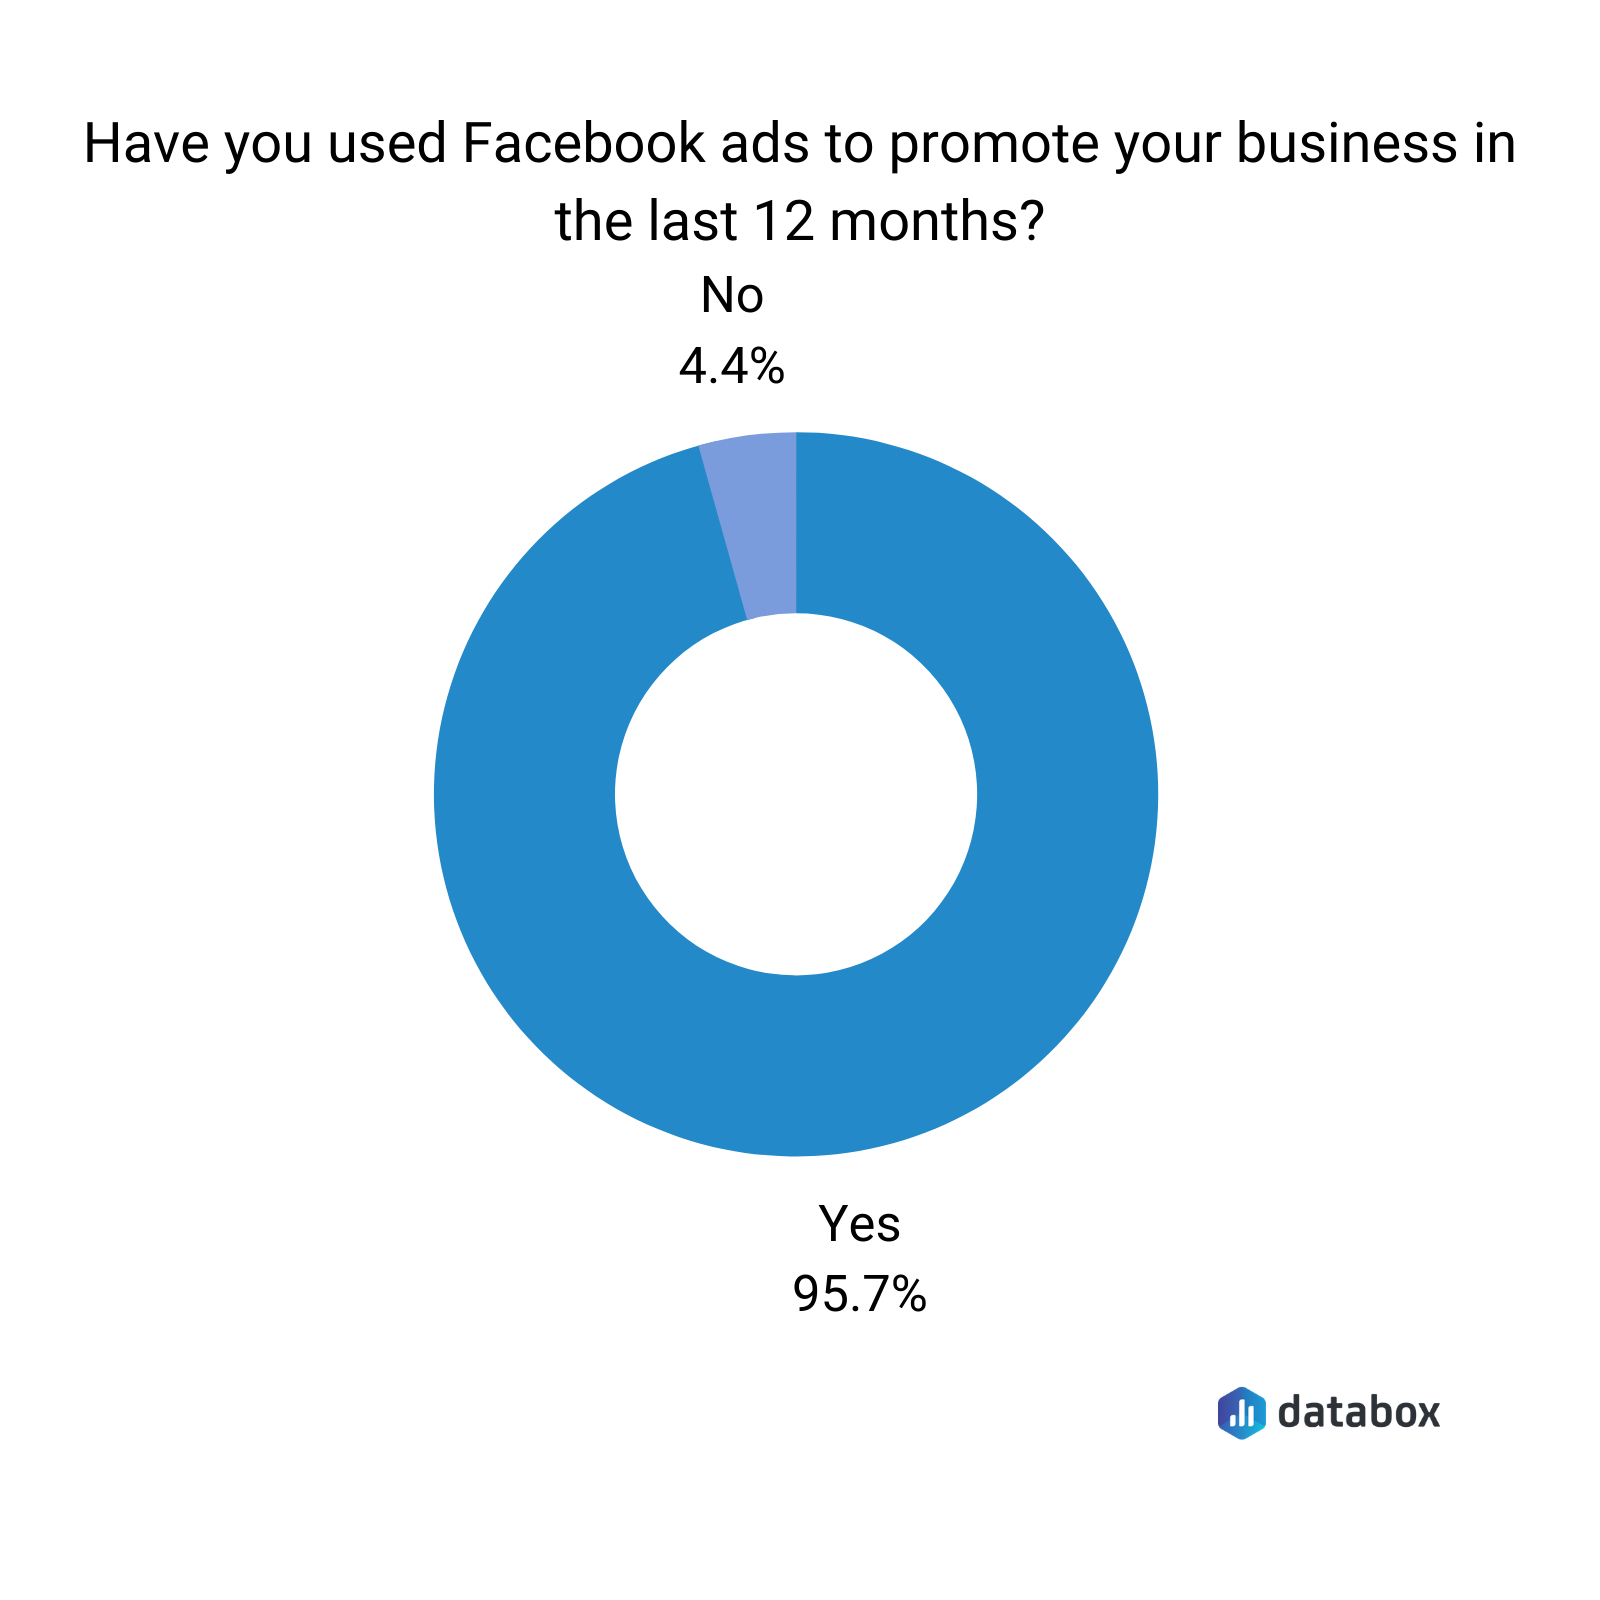 Have you used Facebook ads to promote your business in the last 12 months?